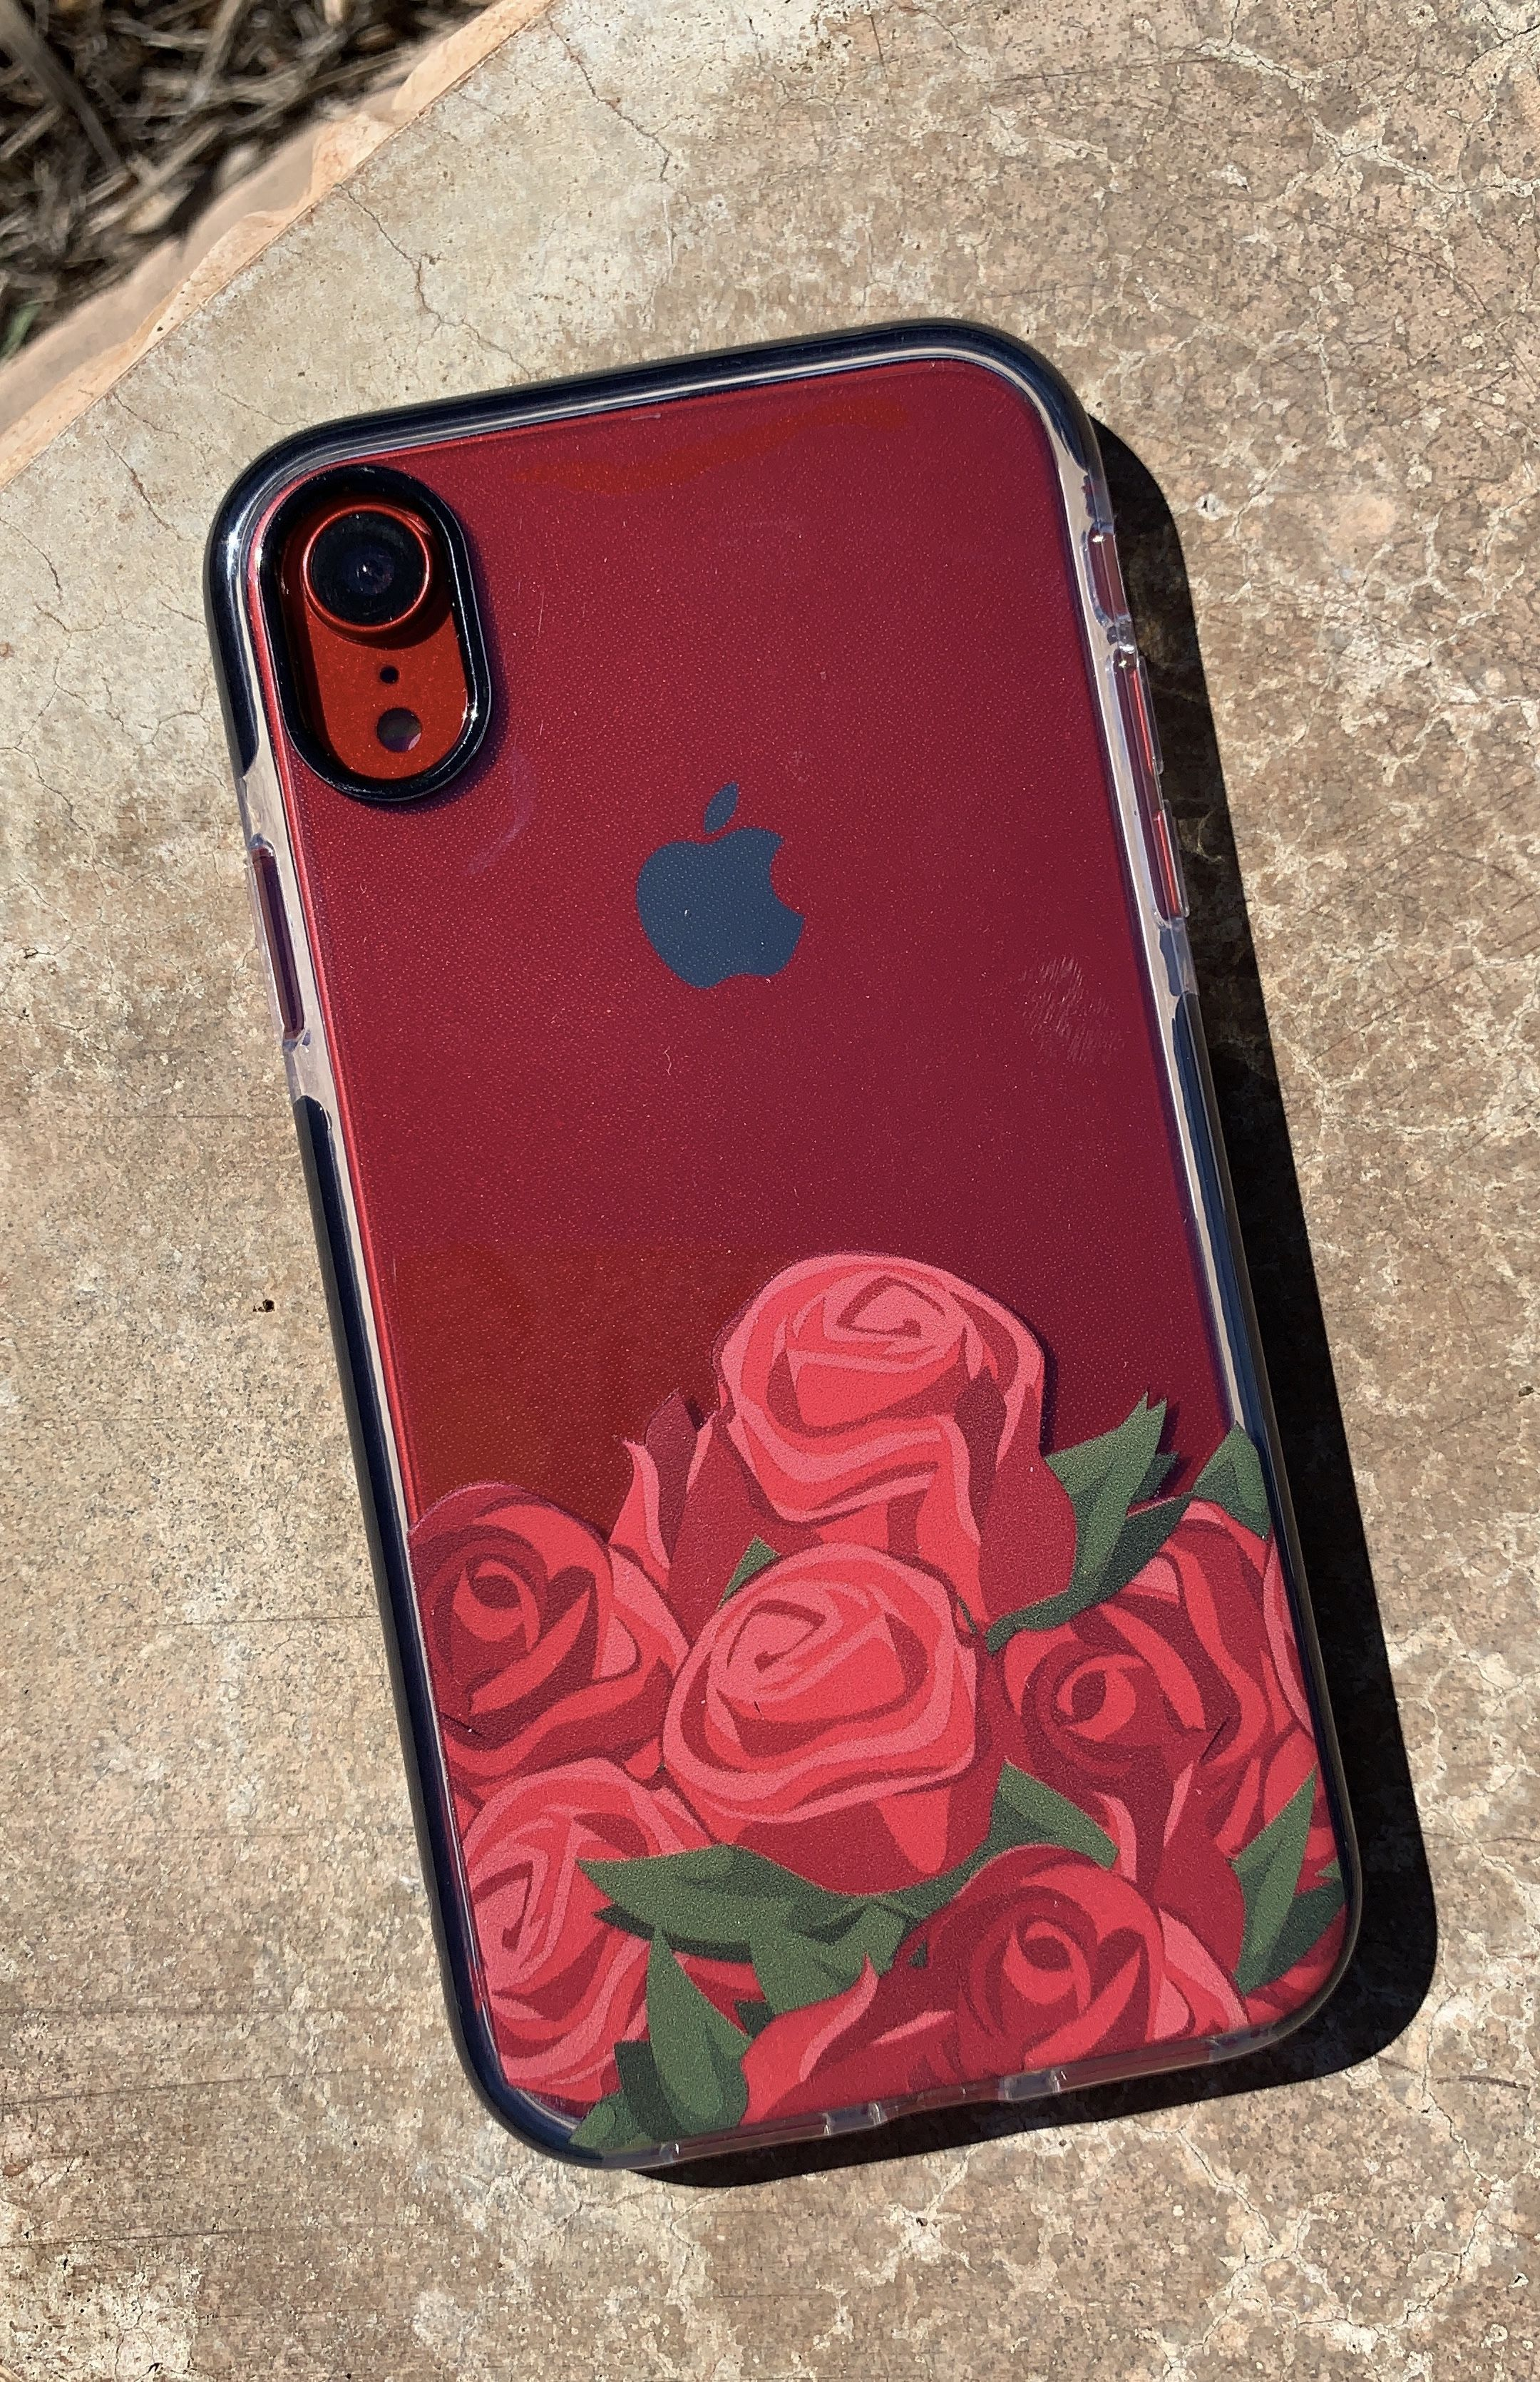 Bouquet for iPhone XR, iPhone XS / X, iPhone XS Max \u0026 iPhone